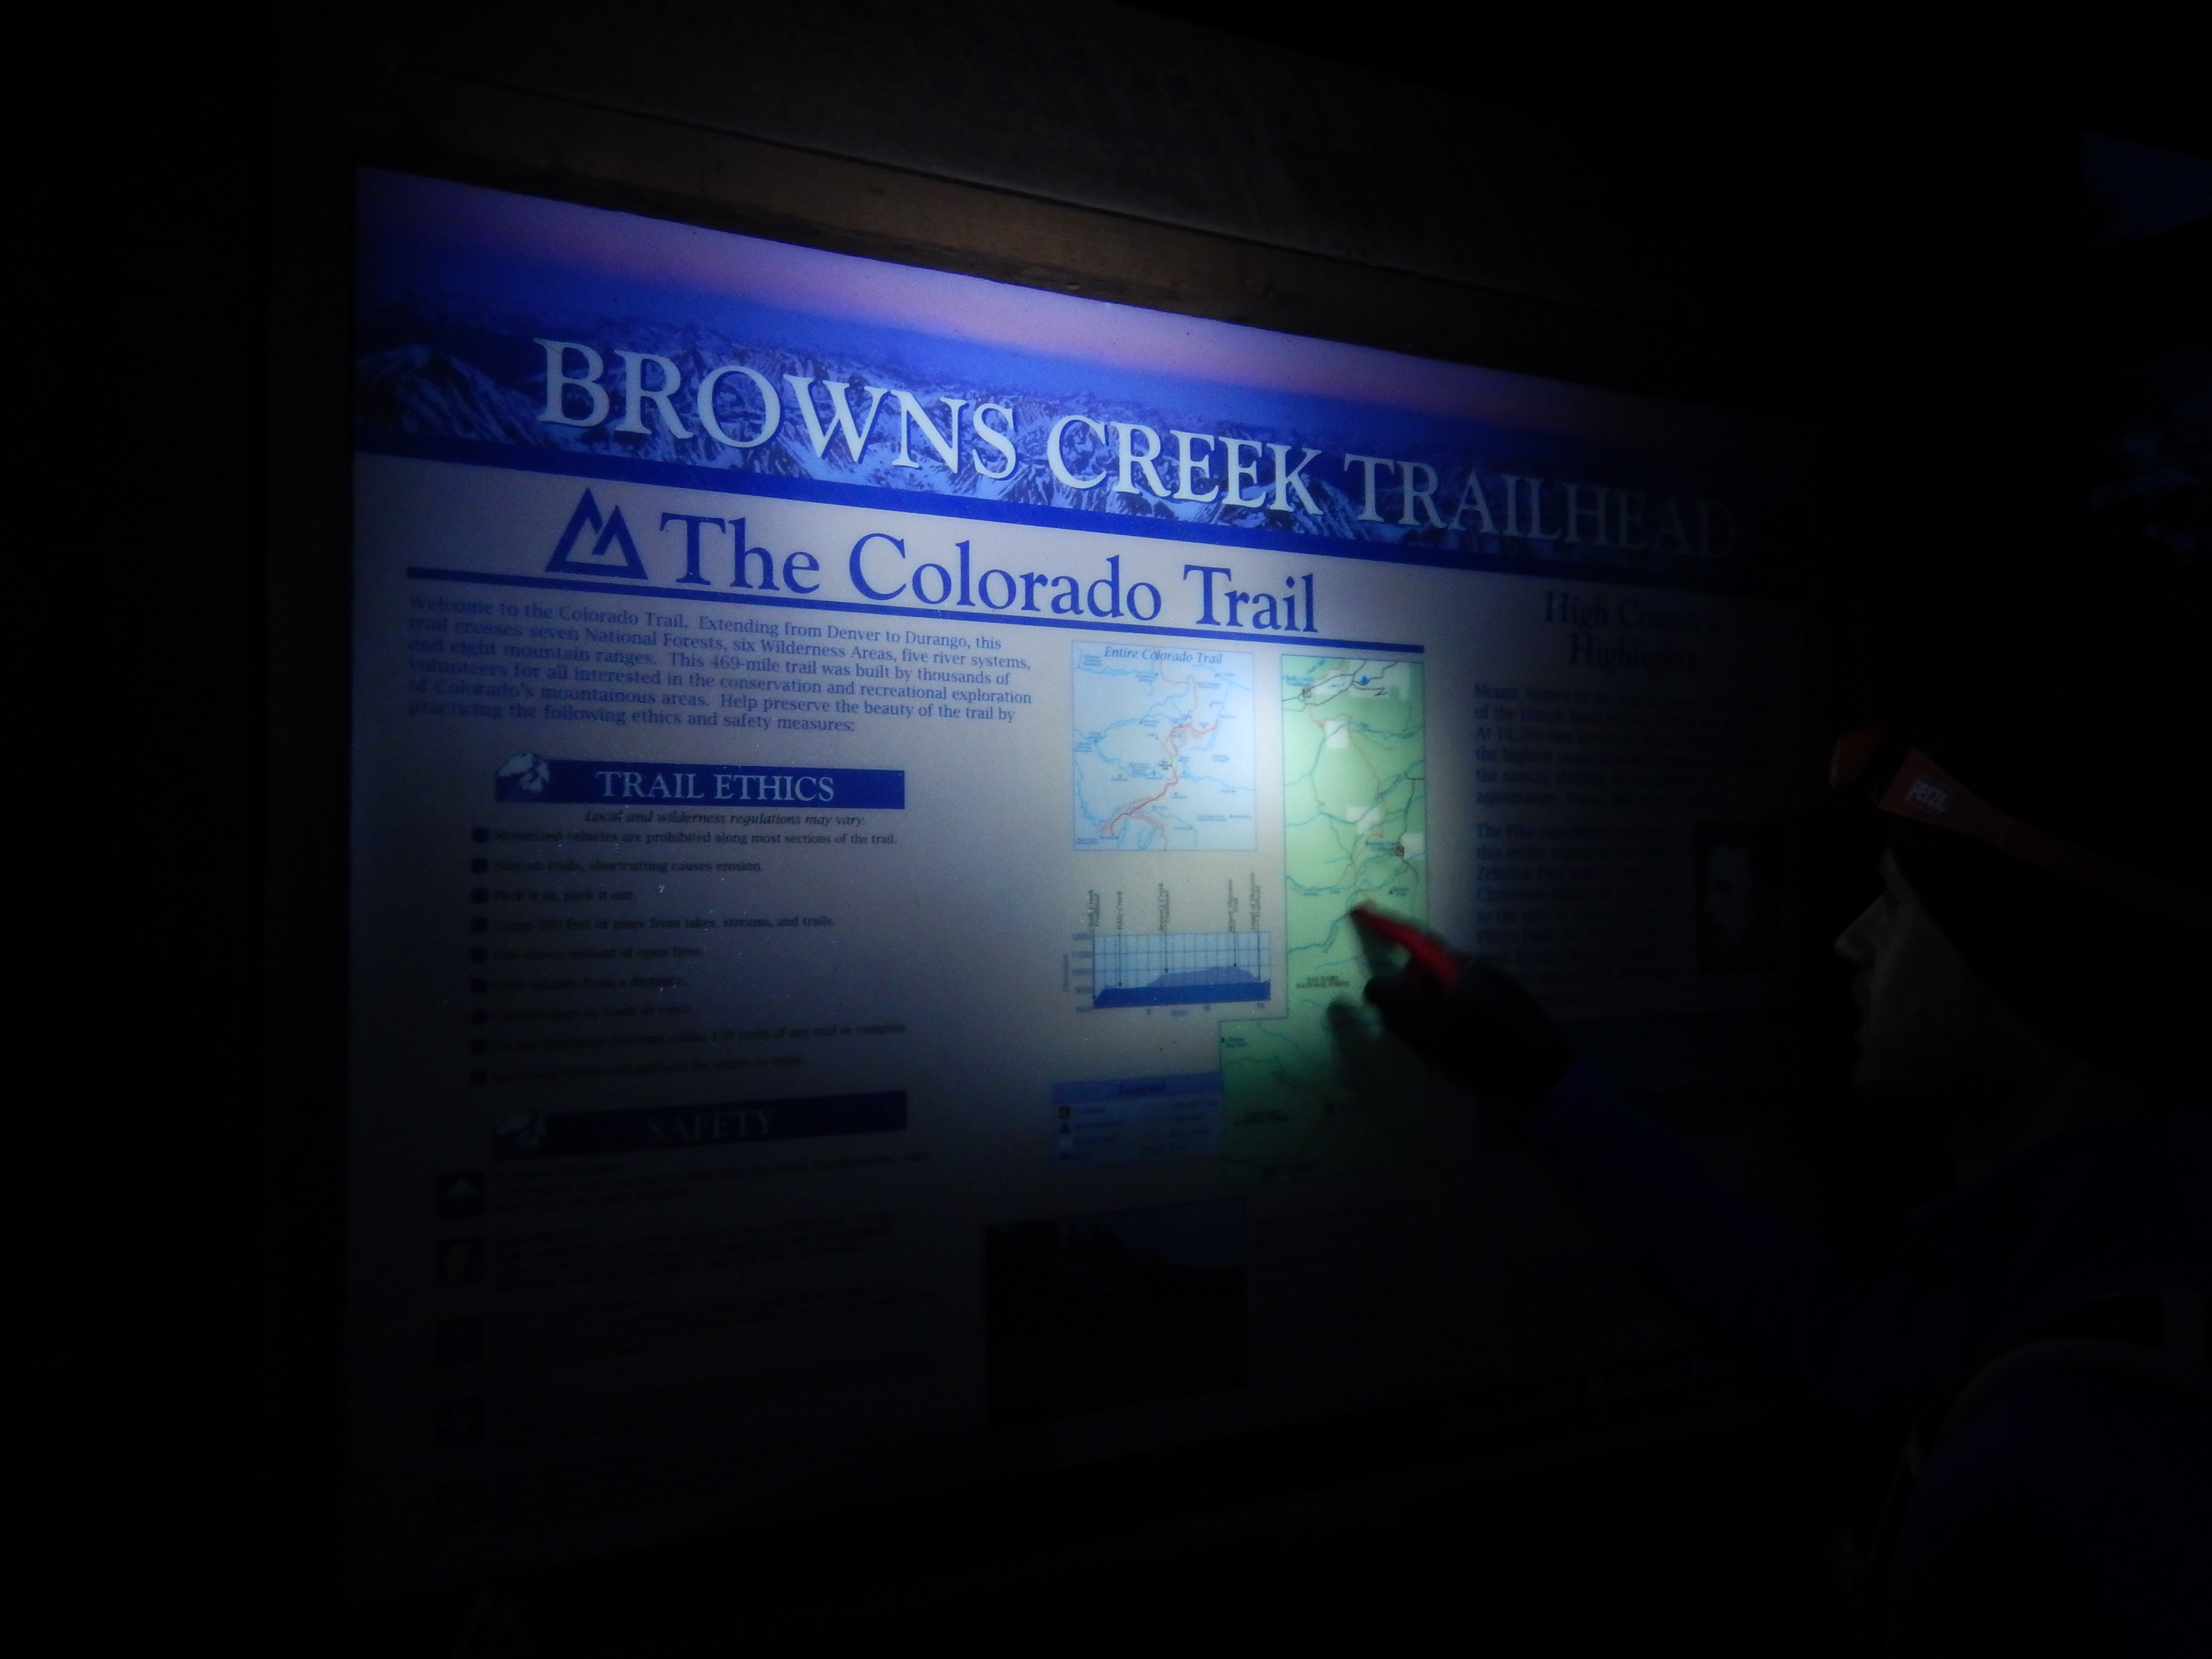 Detailed Browns Creek Trailhead sign